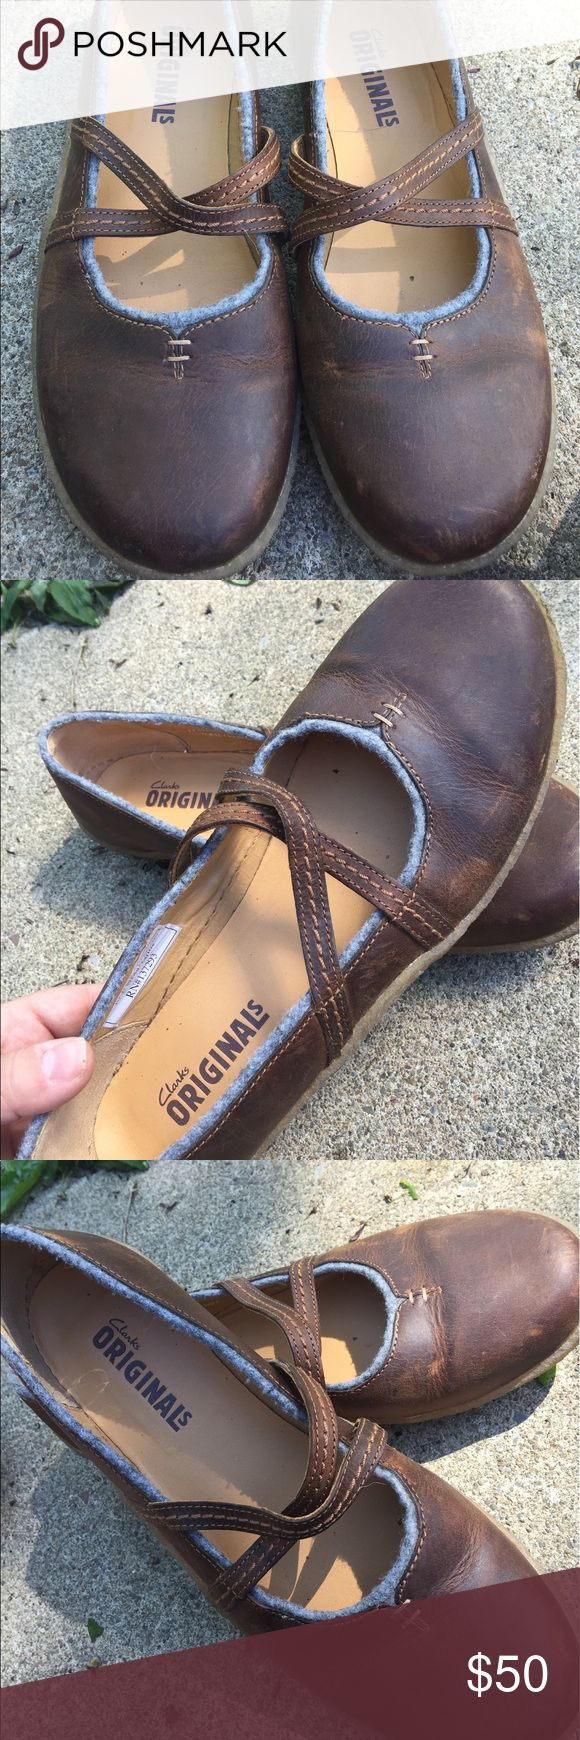 Women's Clarks Brown Leather Mary Janes 10M Women's Clarks Brown Leather Mary Janes 10M. Great Condition Clarks Shoes Flats & Loafers